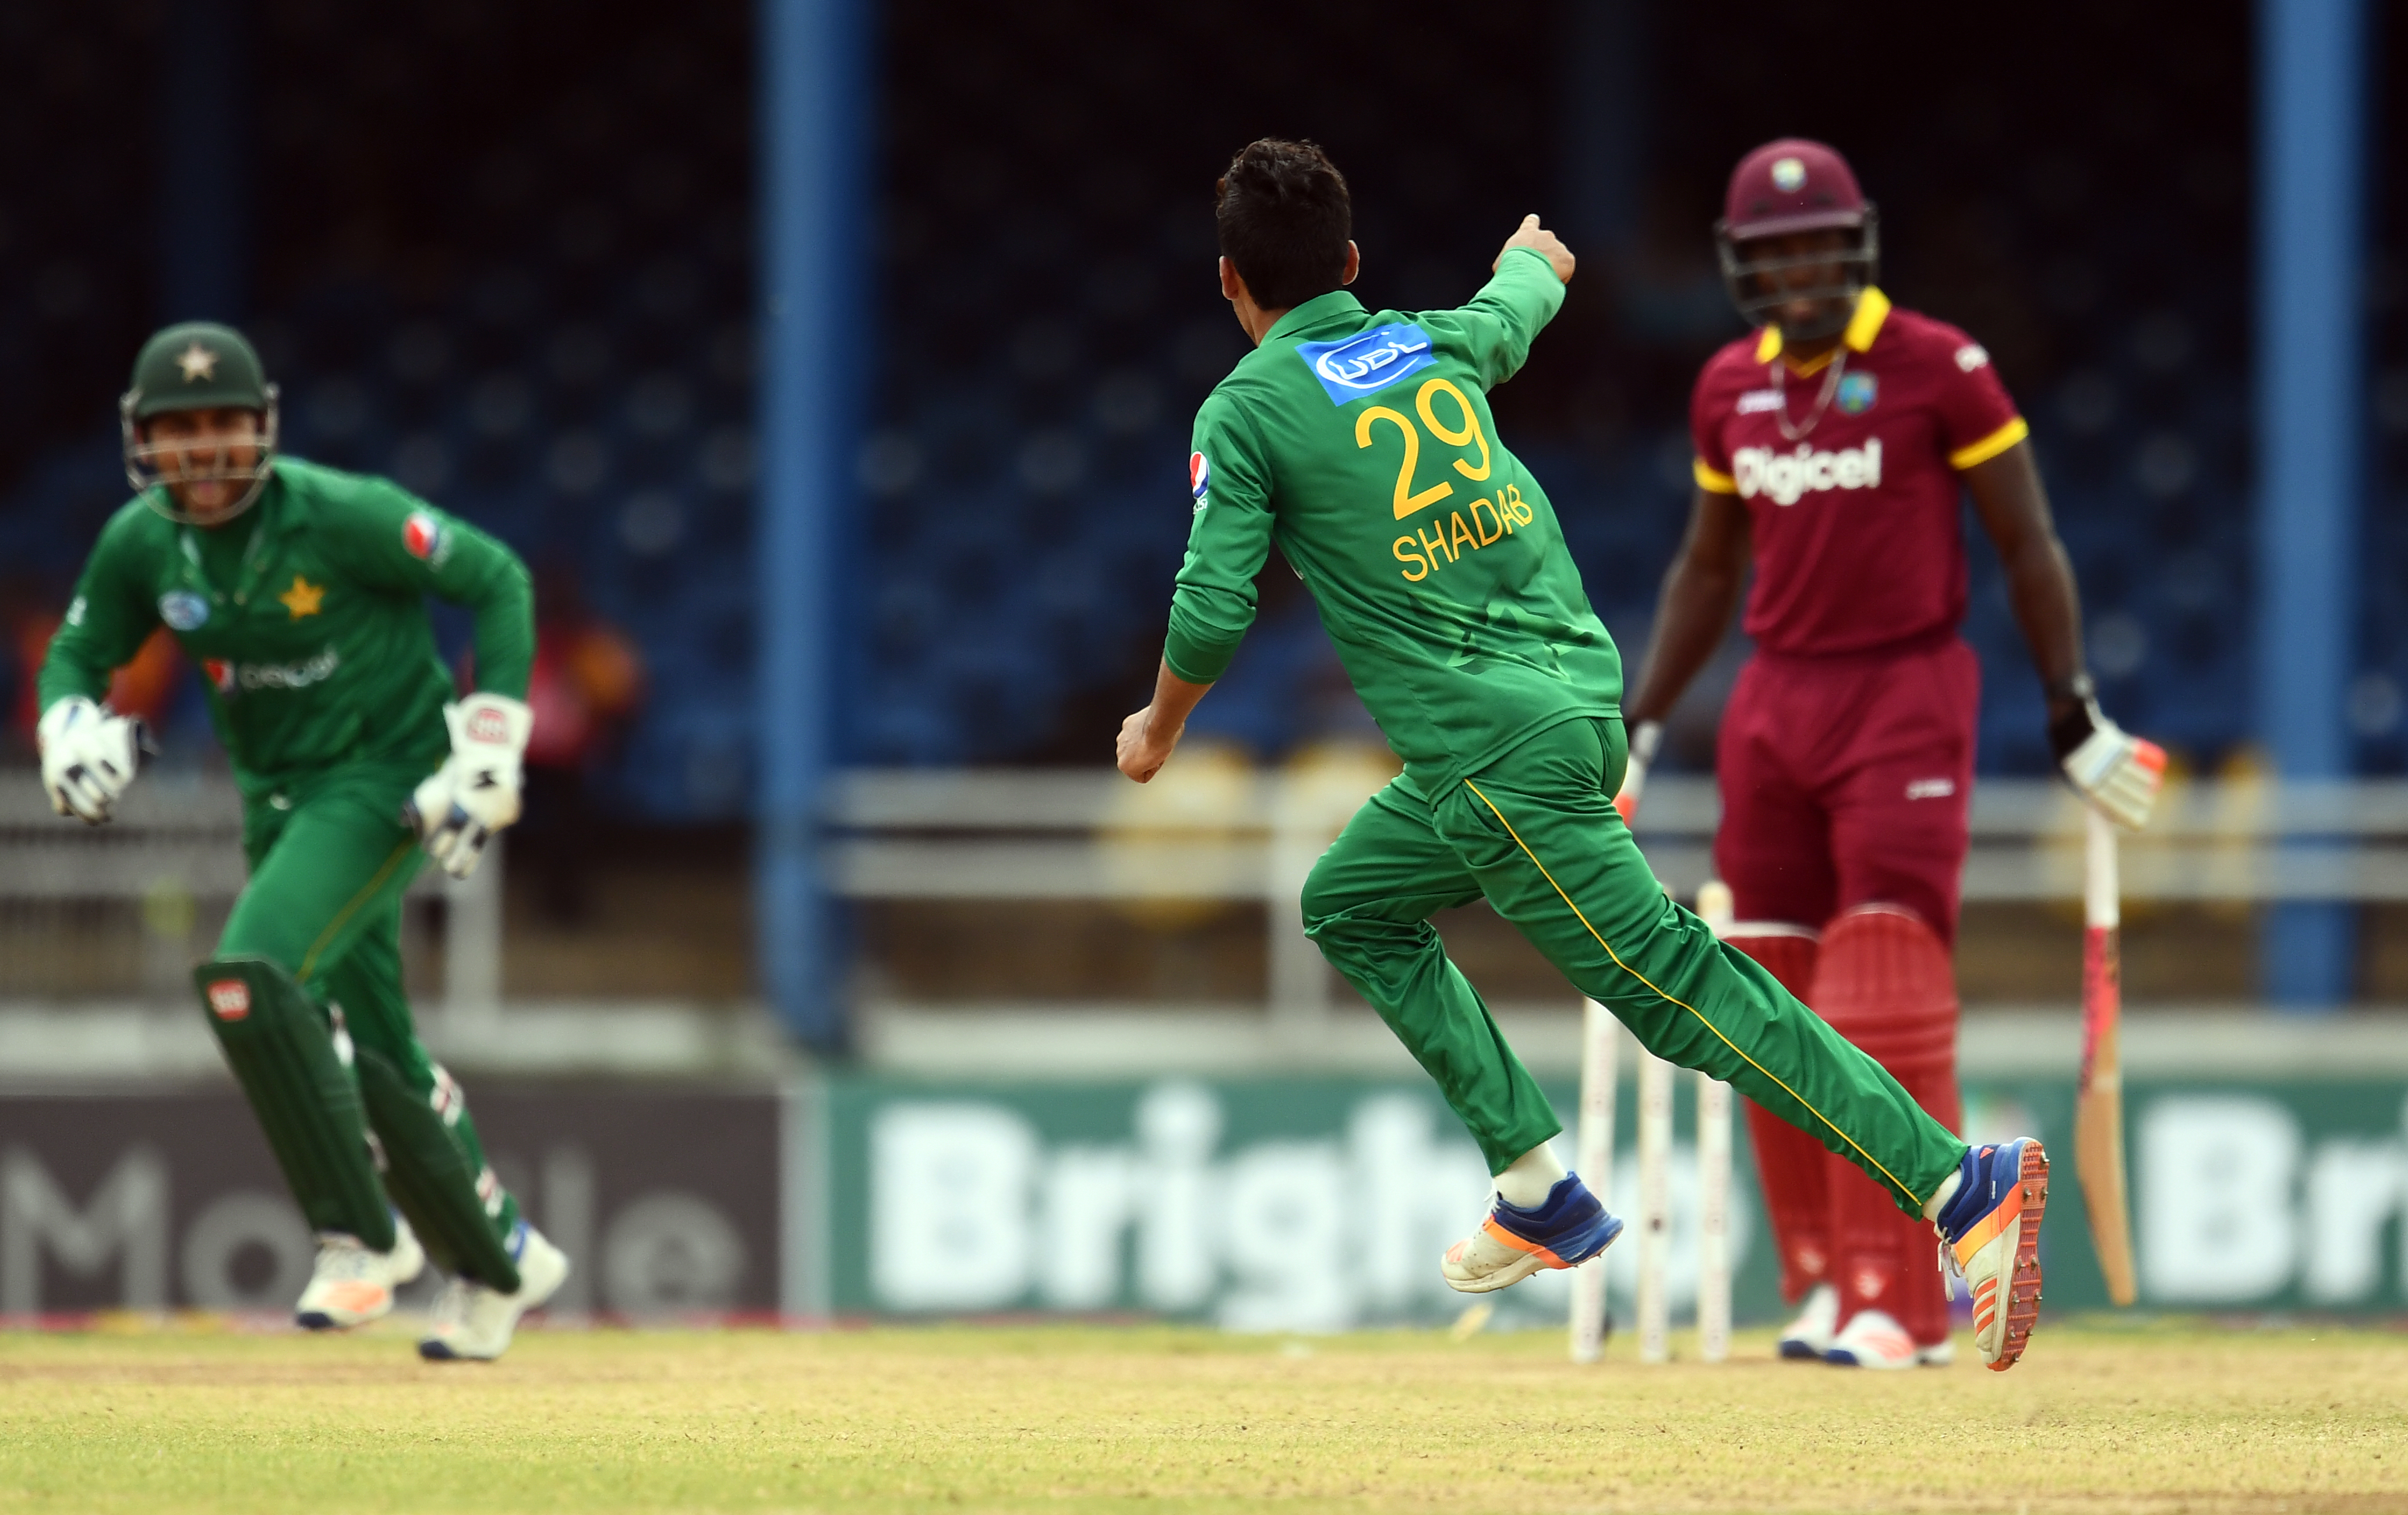 Pakistan's Shadab Khan (#29) celebrates after bowling out West Indies' Rovman Powell (R) during the second of four-T20I-match between West Indies and Pakistan at the Queen's Park Oval in Port of Spain, Trinidad, on March 30, 2017. / AFP PHOTO / Jewel SAMAD